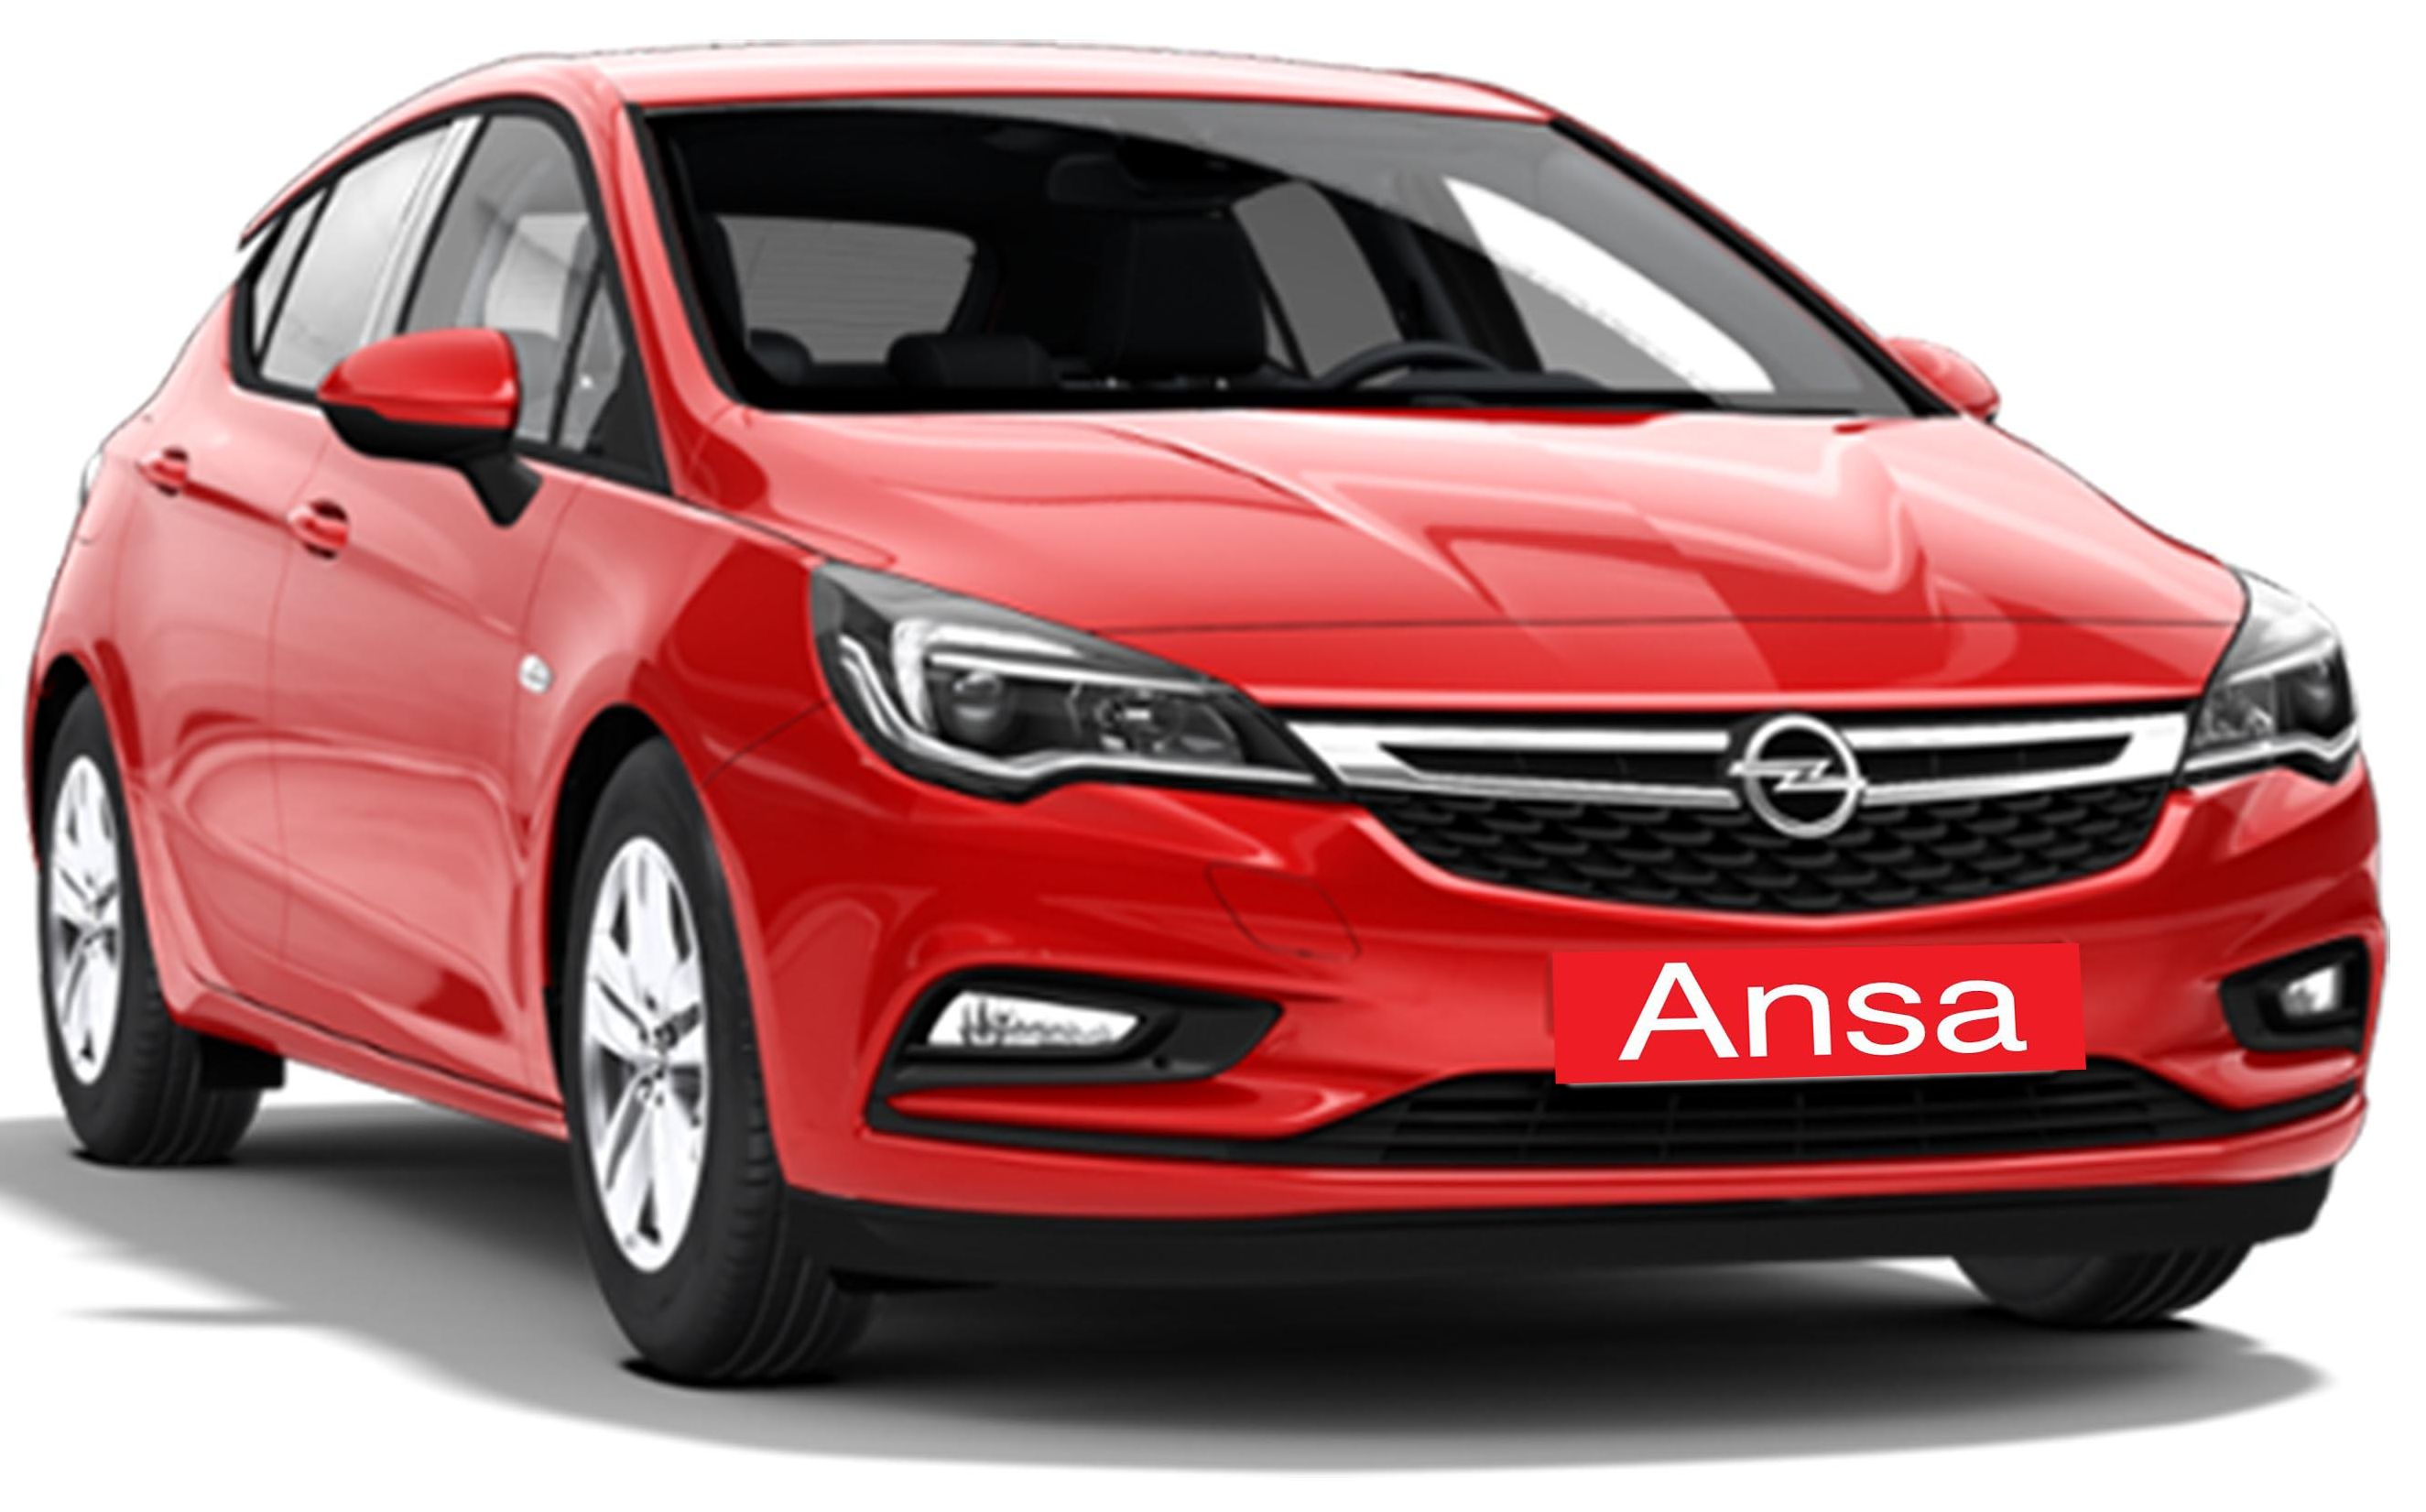 OPEL ASTRA 1.4 A/C